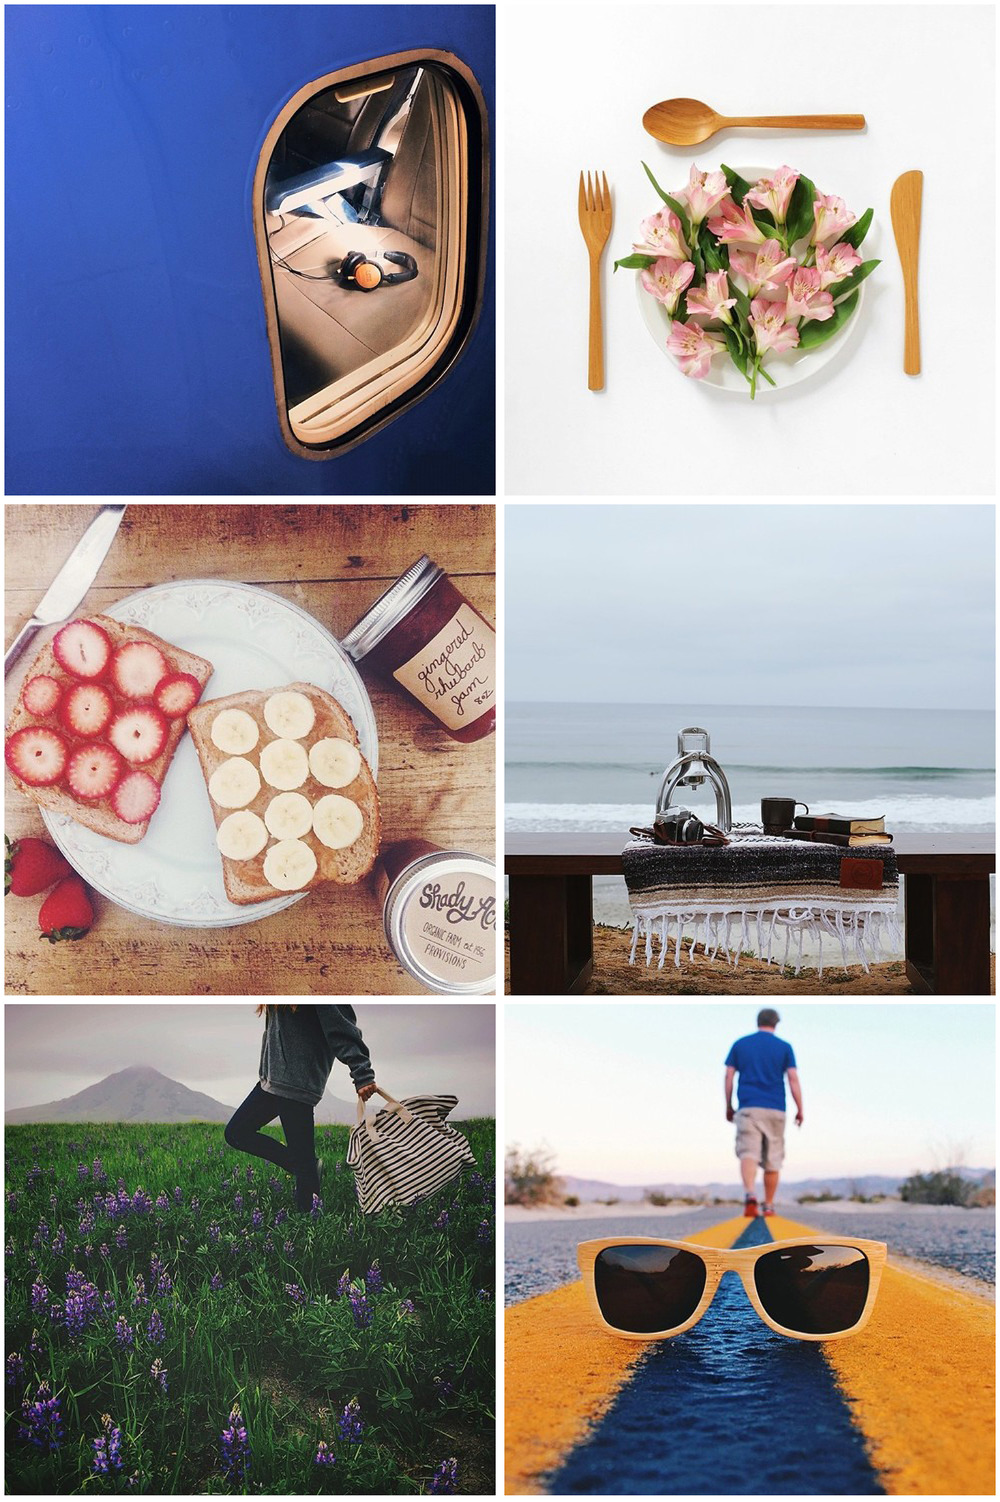 Images from an Earth Day campaign by Mobile Media Lab for Rodales. From top left, influential Instagrammers @brandenharvey, @cacahuete_sr, @flashesofstyle, @gregorywoodman, @mrsgrubby and @sar_m were all commissioned to post photos to their own feeds.